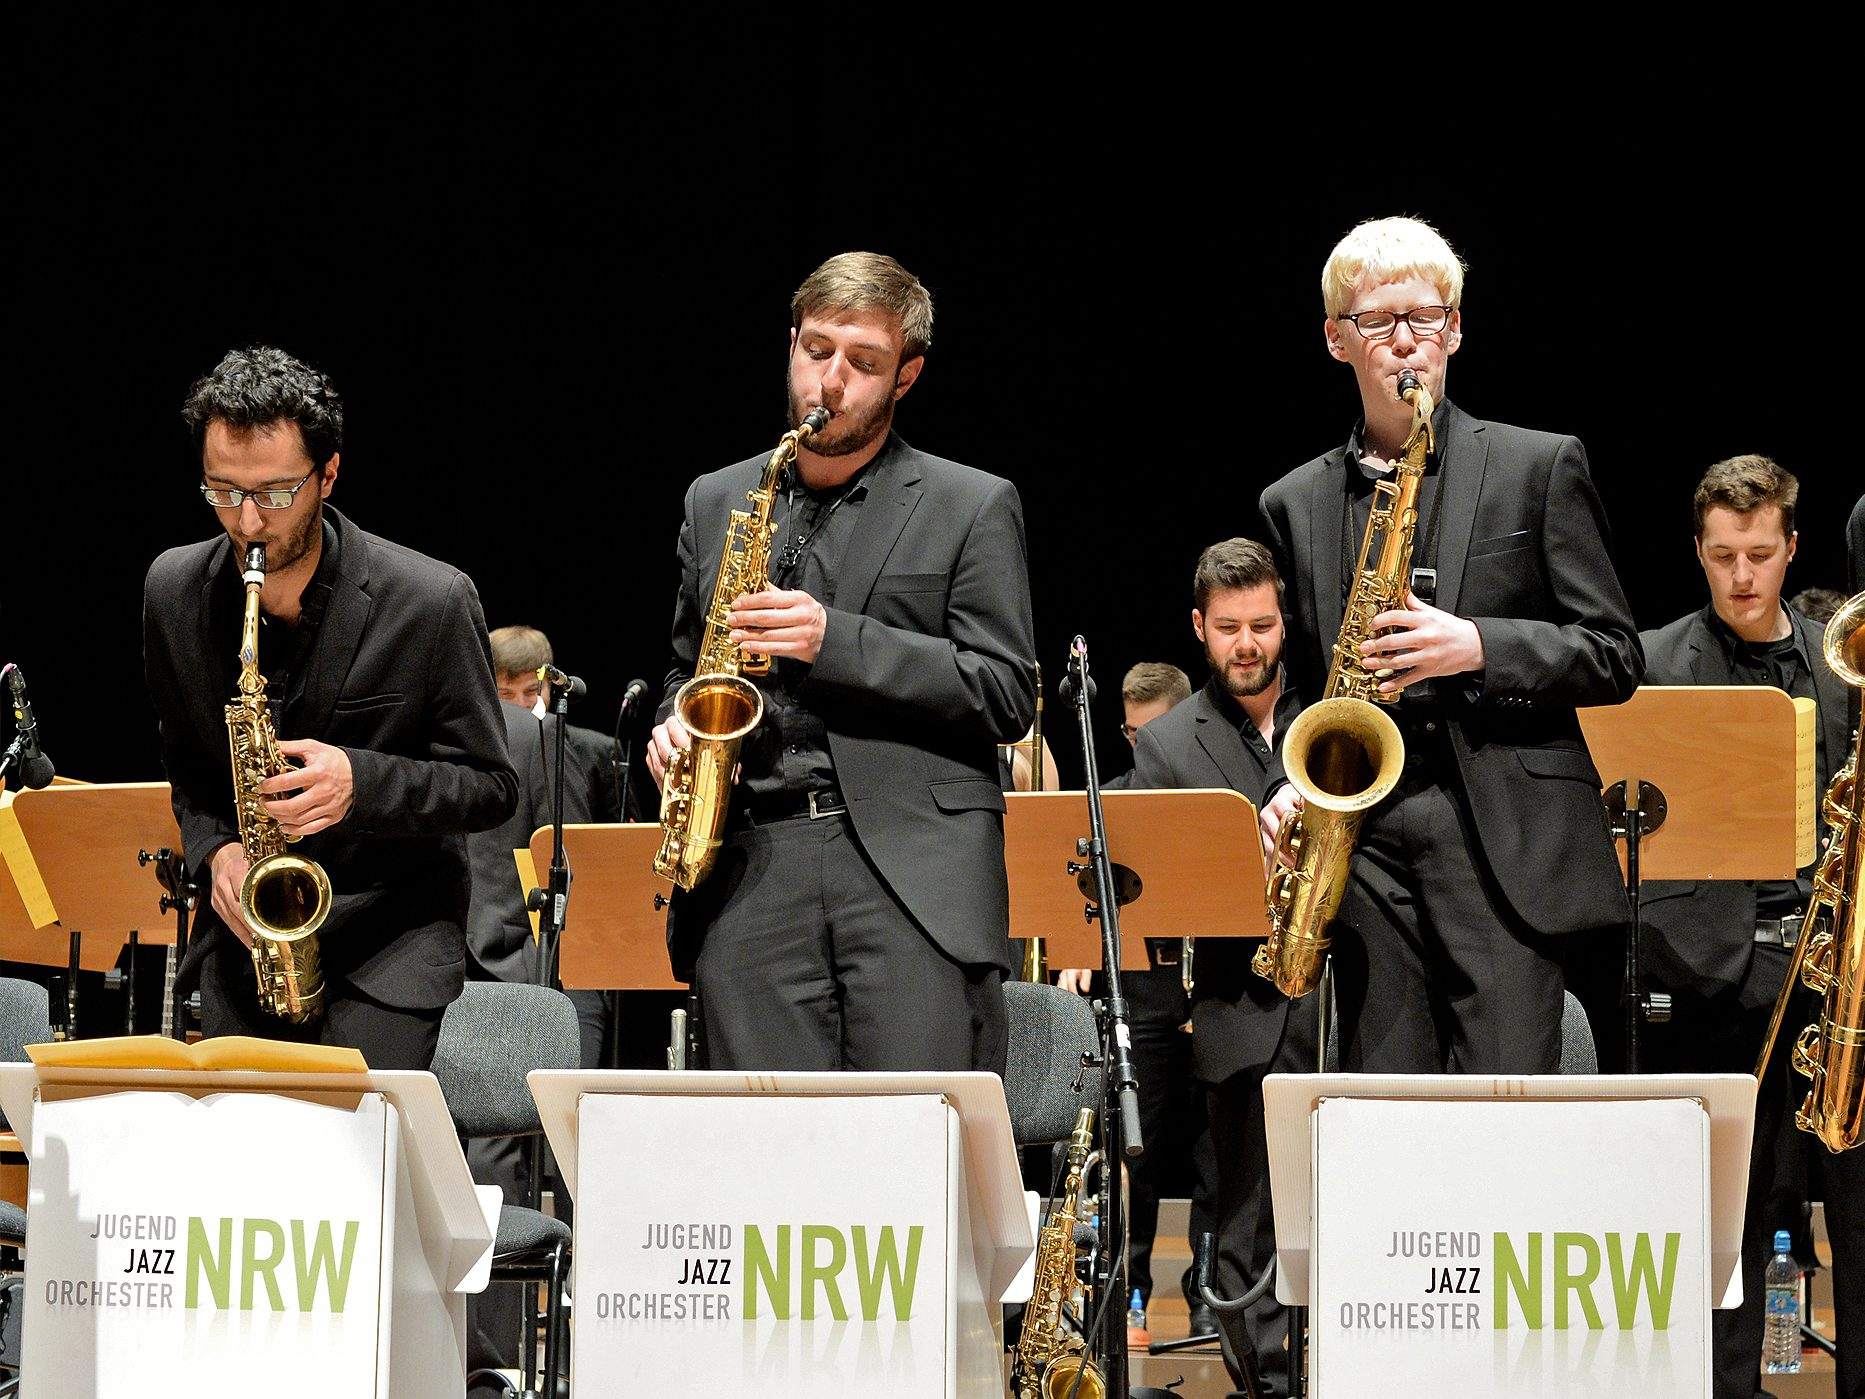 JugendJazzOrchester NRW – Special Guest: Theo!